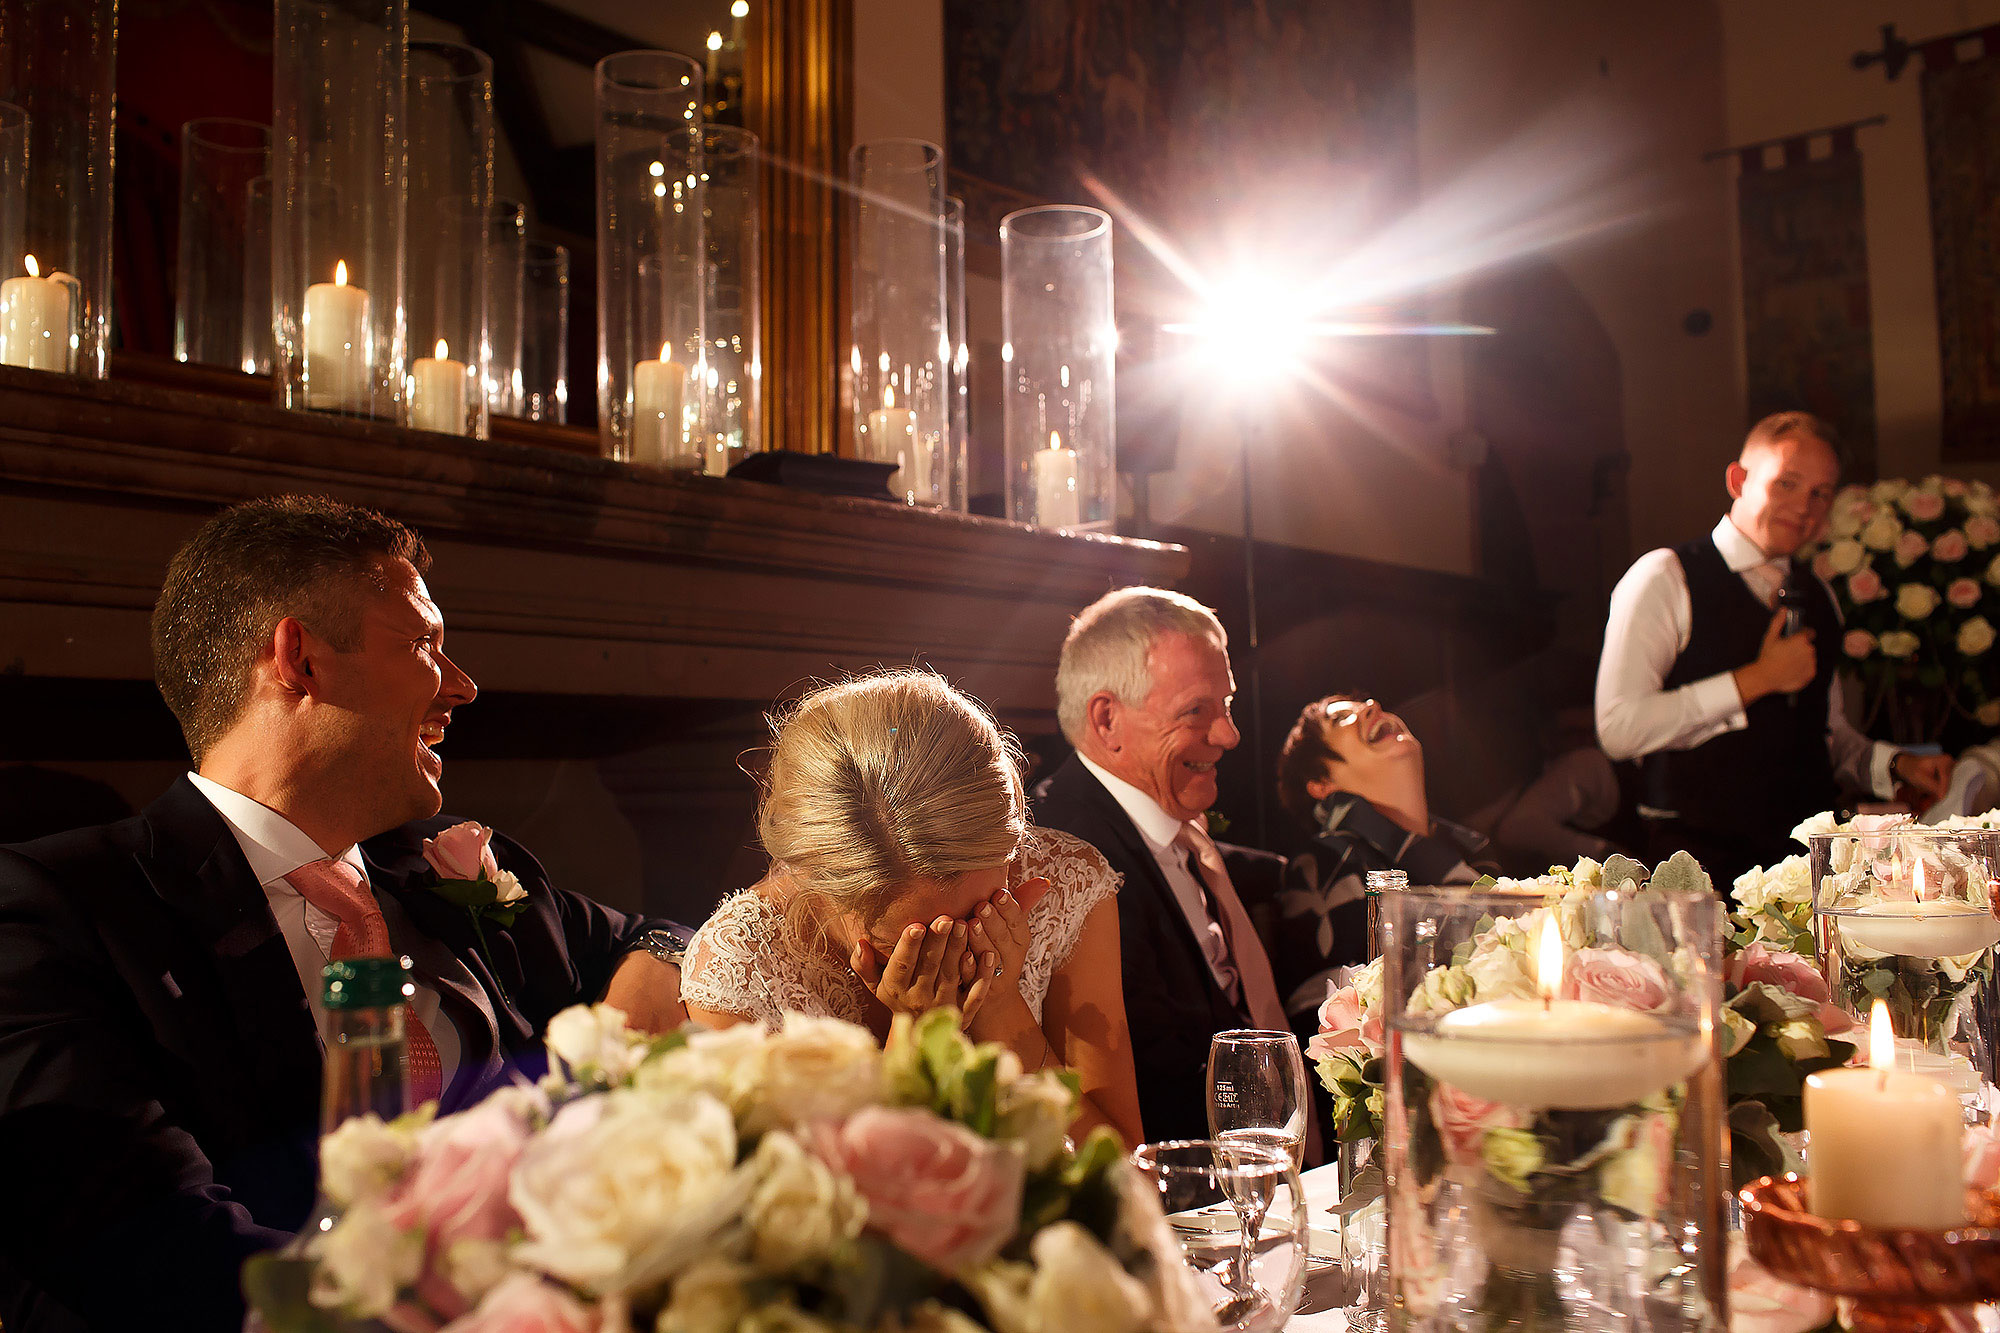 Top table laughing during wedding speeches with decorations of flowers and candles | Peckforton Castle Wedding by Toni Darcy Photography